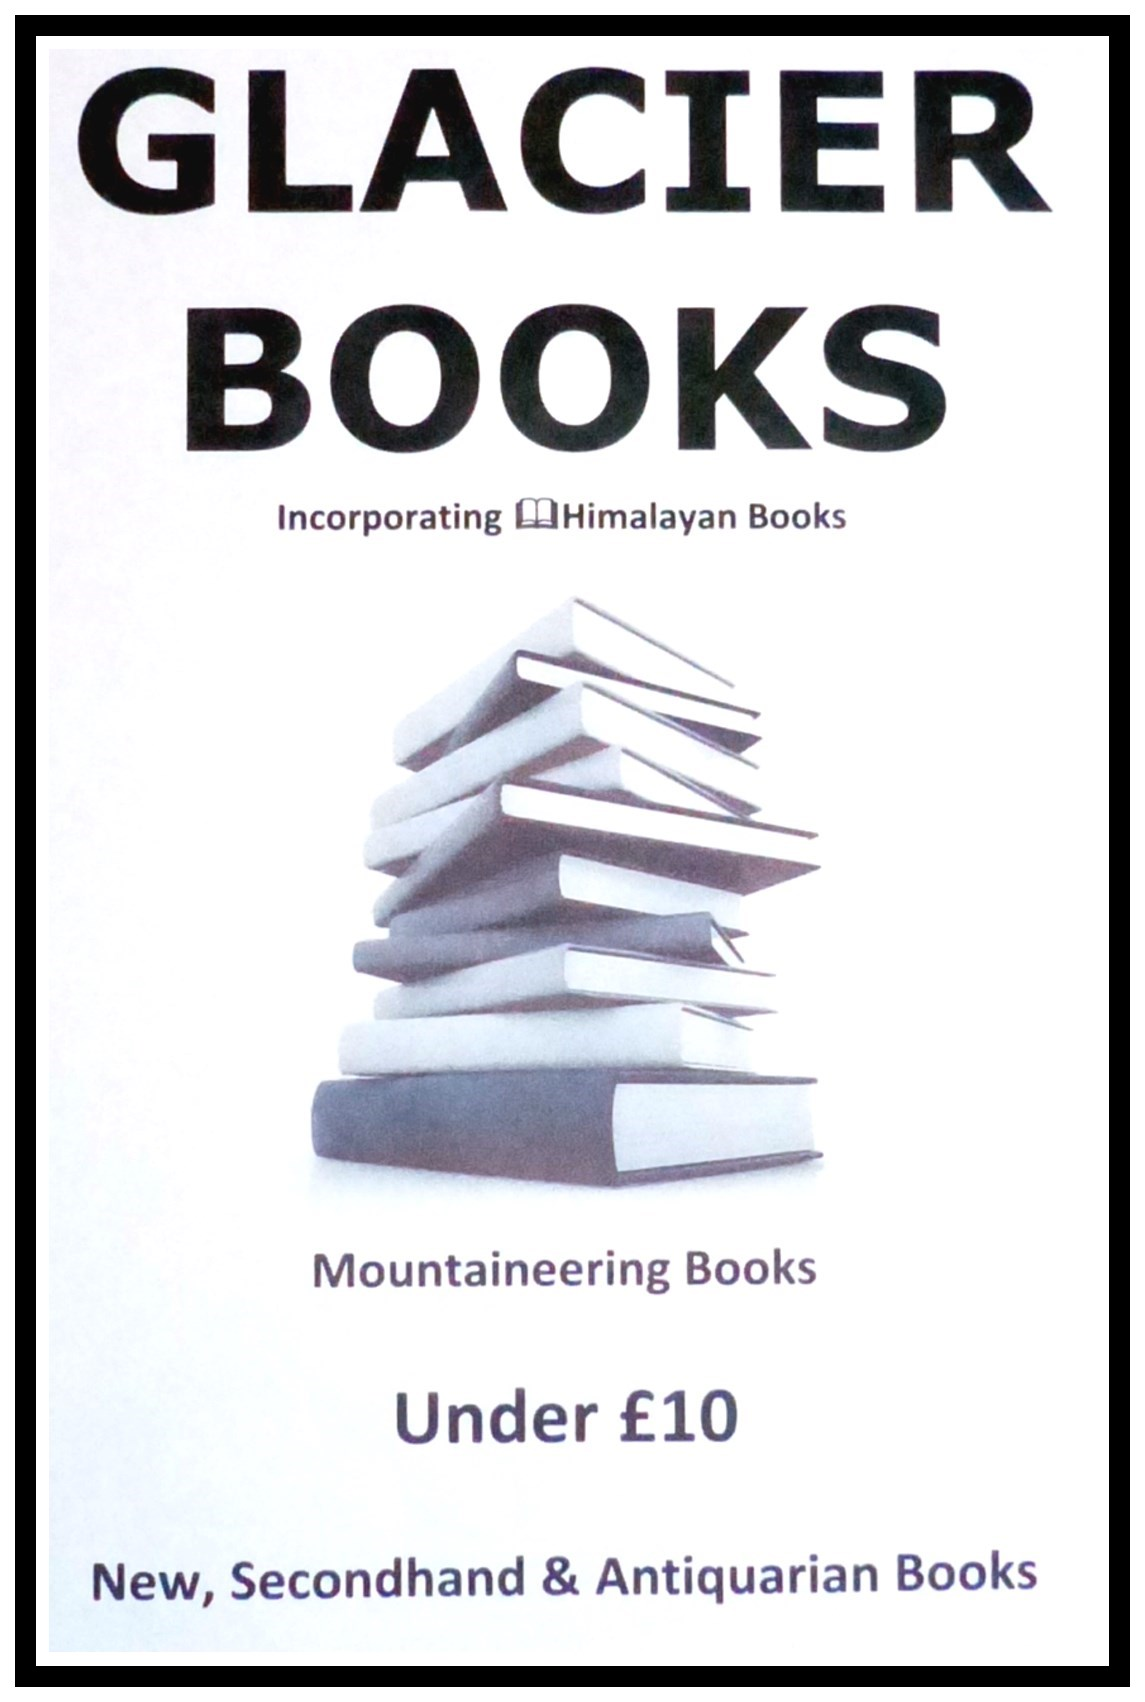 Mountaineering Books Under £10